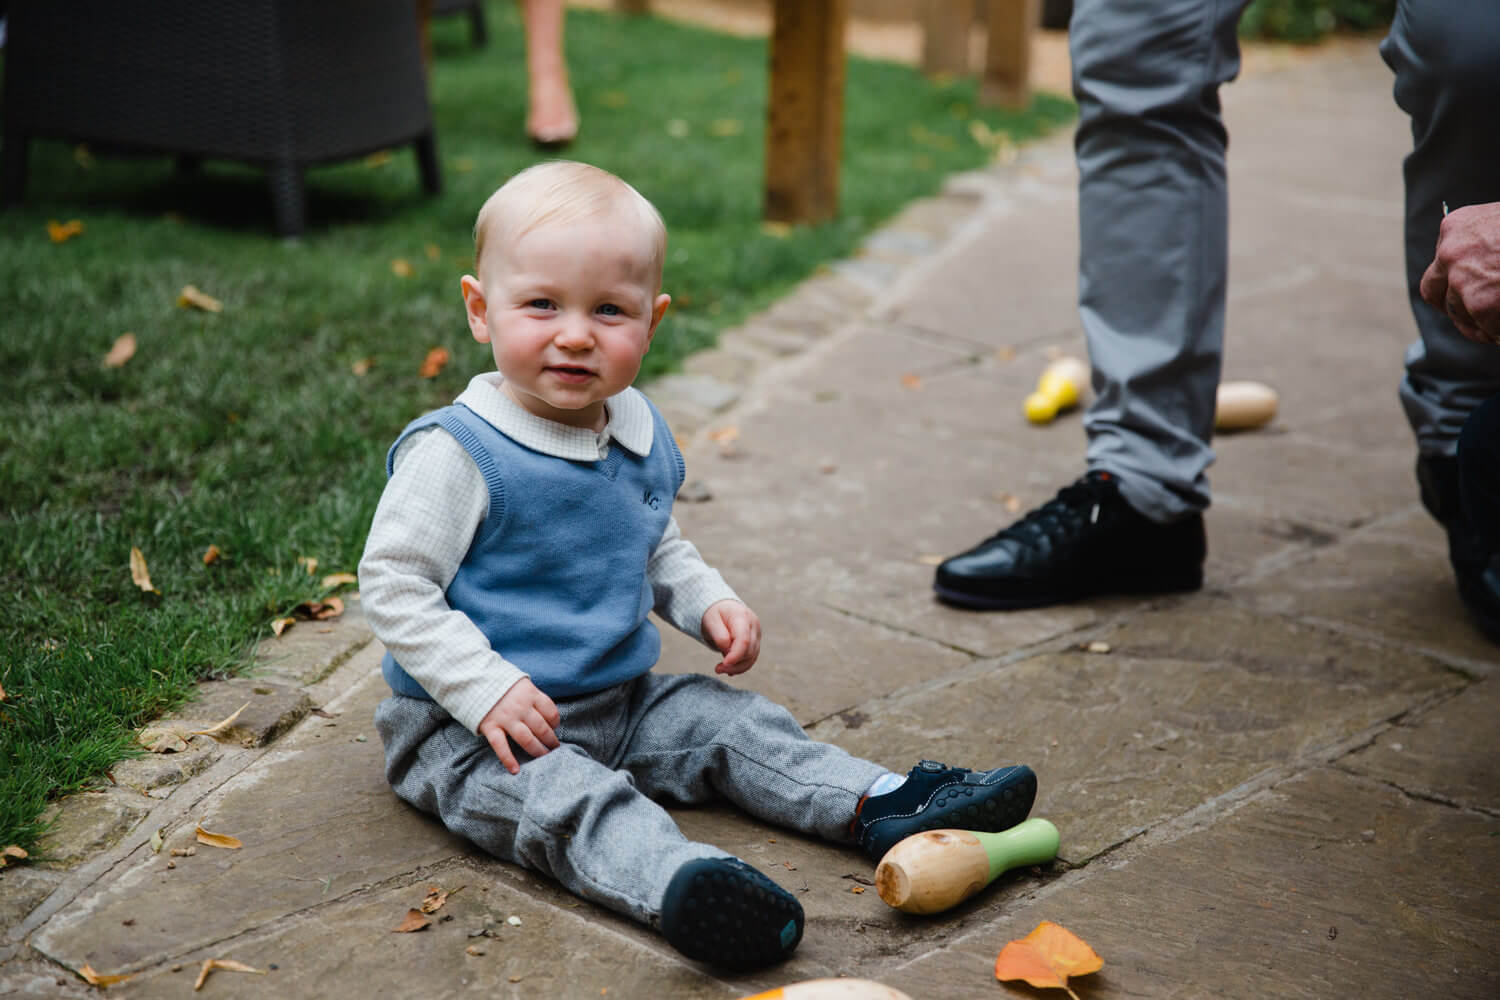 page boy sat on floor looking at camera while playing skittles lawn game